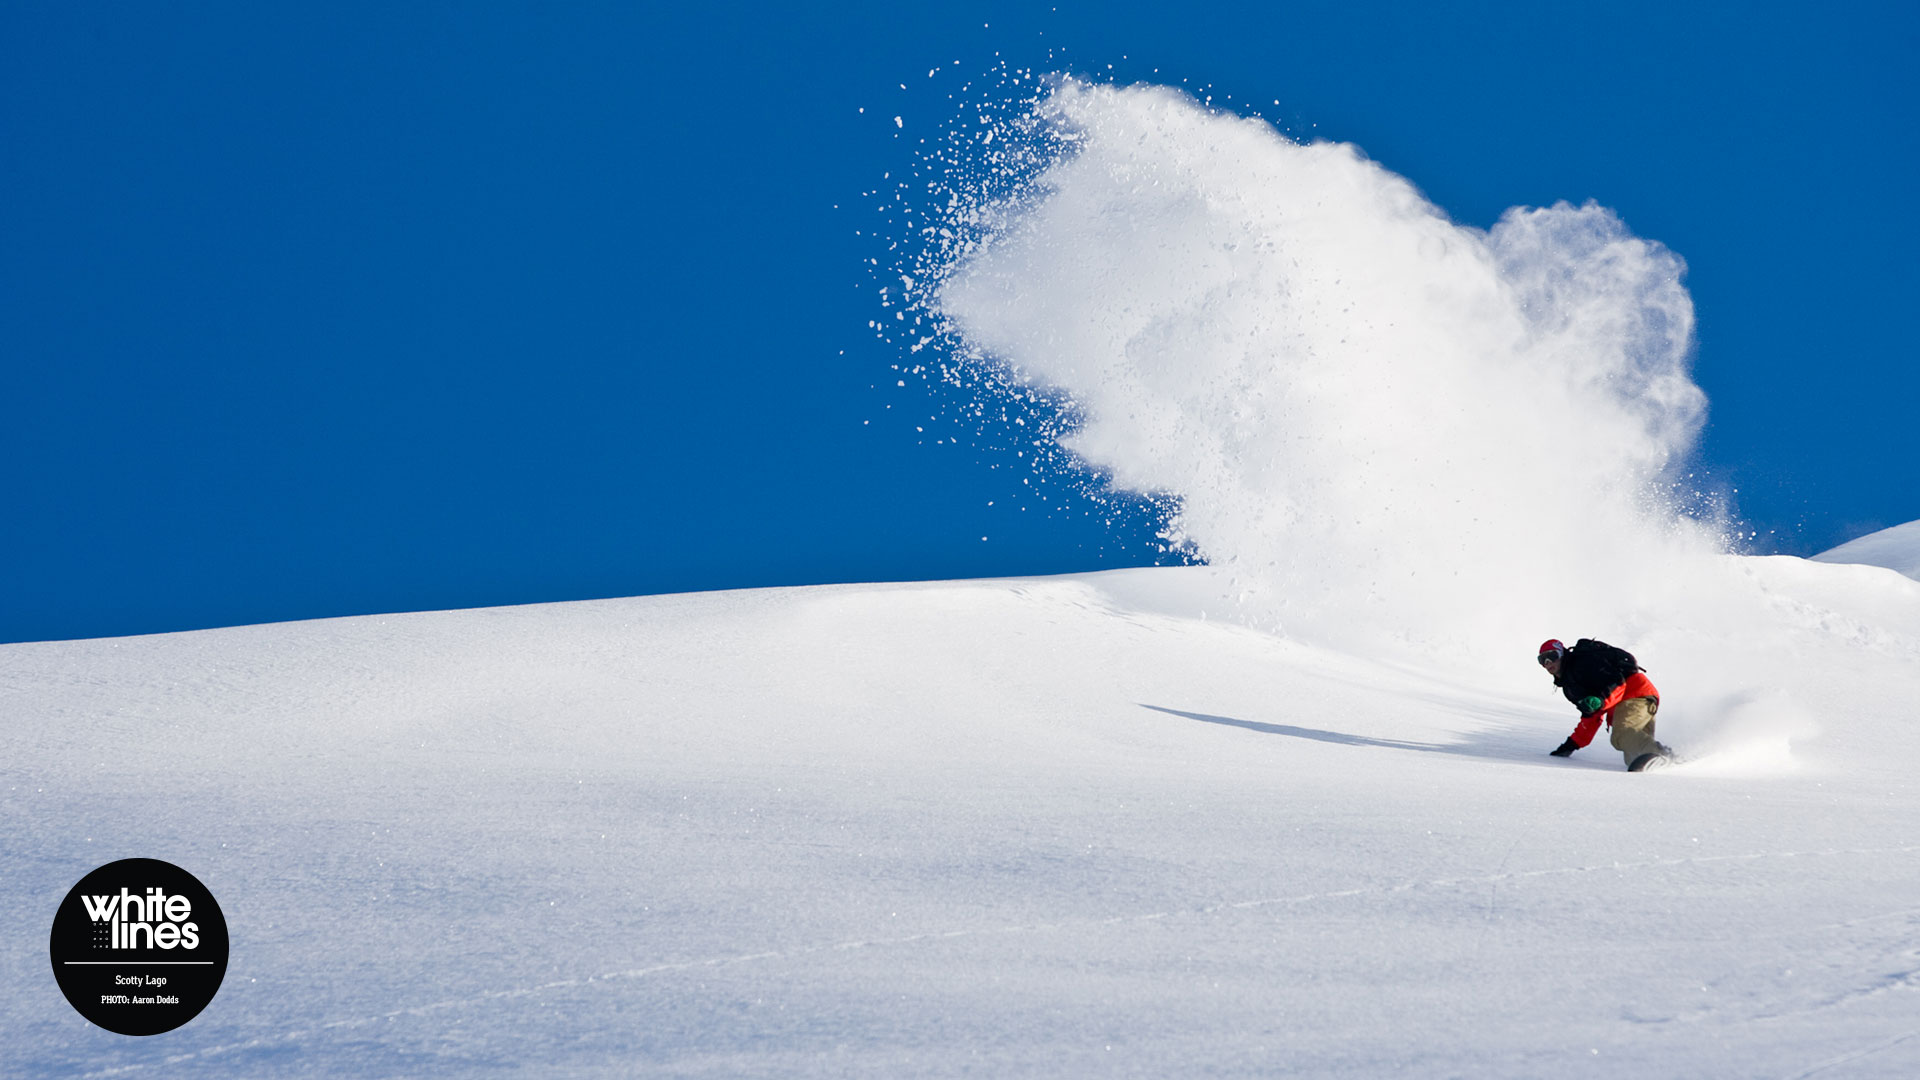 Snowboard Wallpaper - Scotty Lago kicks up a rooster tail in Alaska